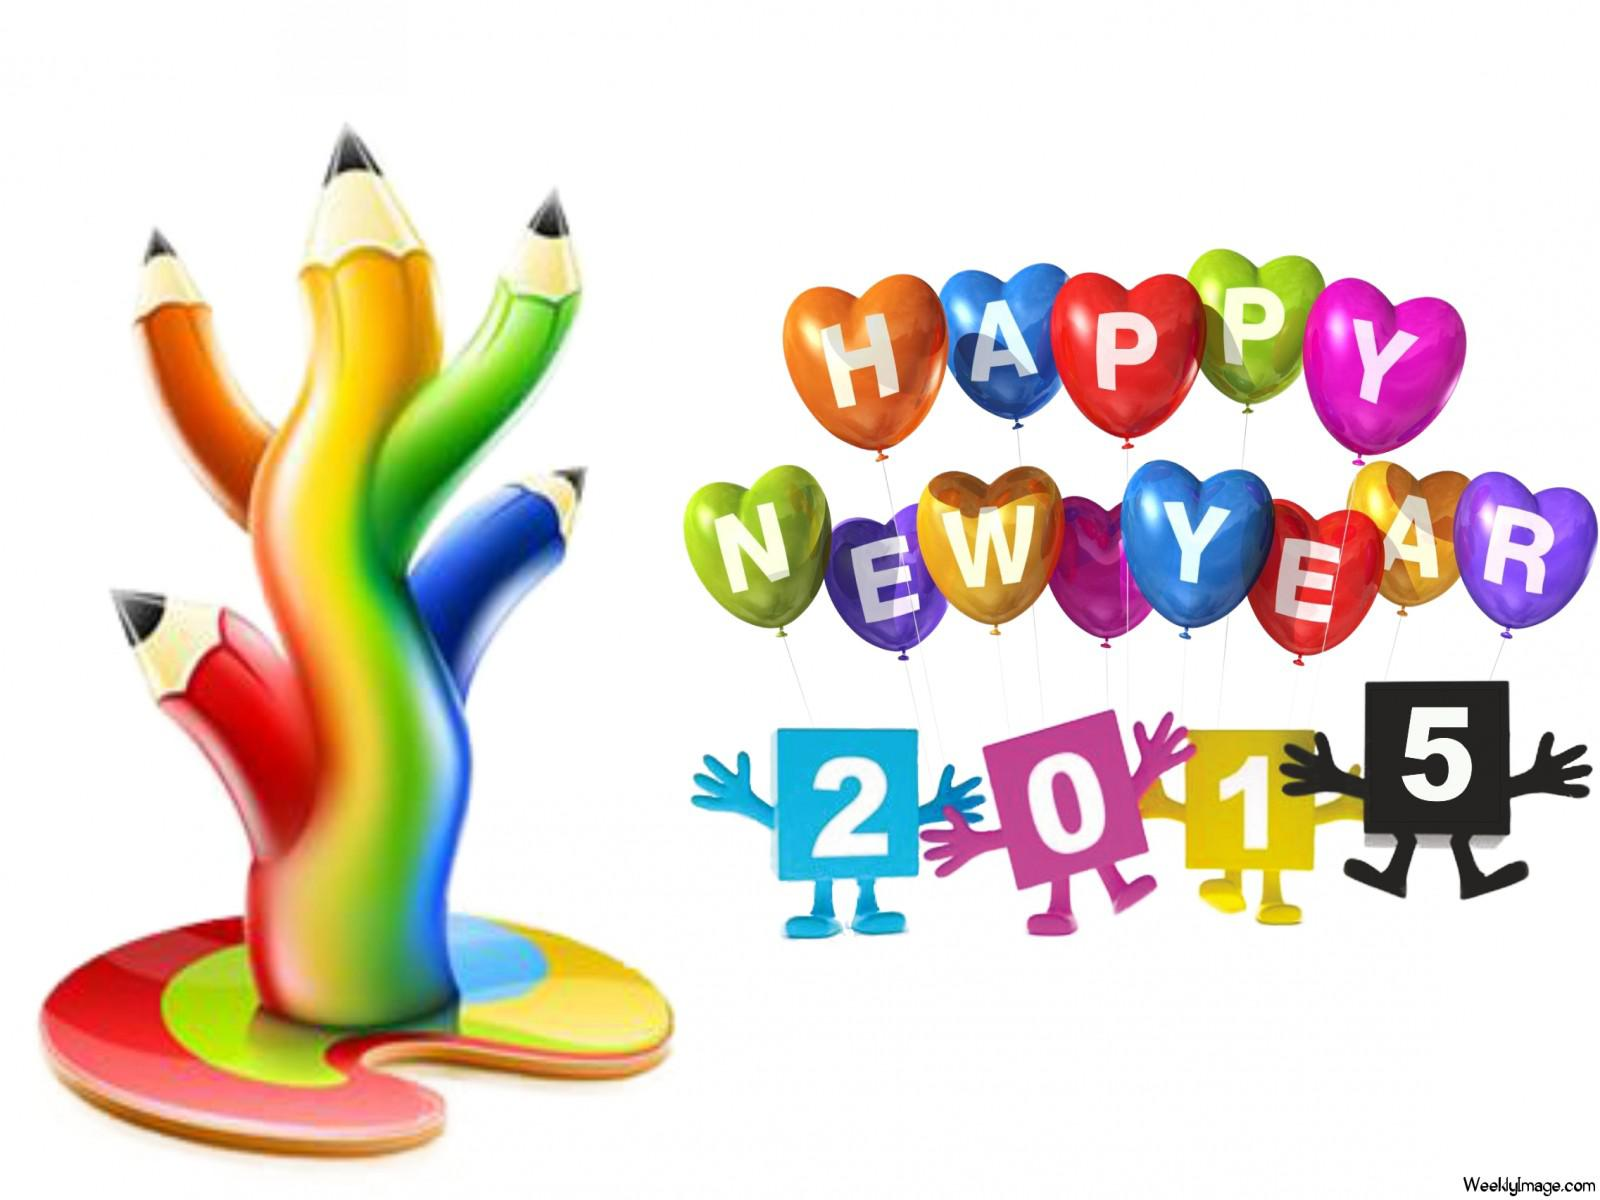 Happy new year 2016 clipart free download graphic black and white download Free Happy New Year Cartoon Images, Download Free Clip Art, Free ... graphic black and white download